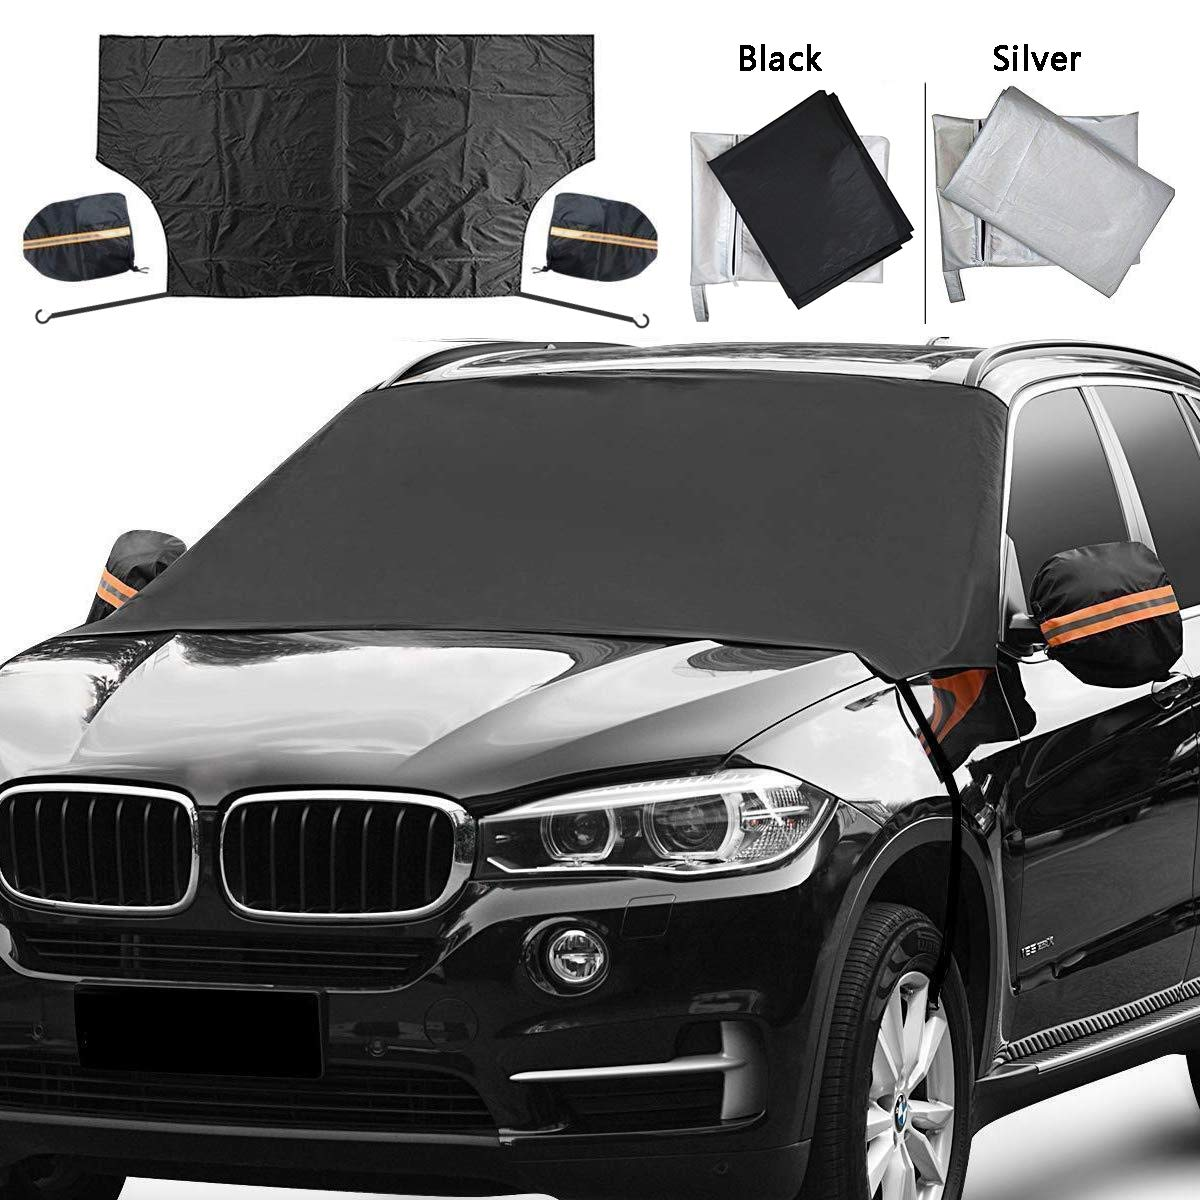 Rongbenyuan Windshield Snow Cover Windproof Sunshade Cover with Outside Mirror Cover for Cars and SUVs All Seasonable